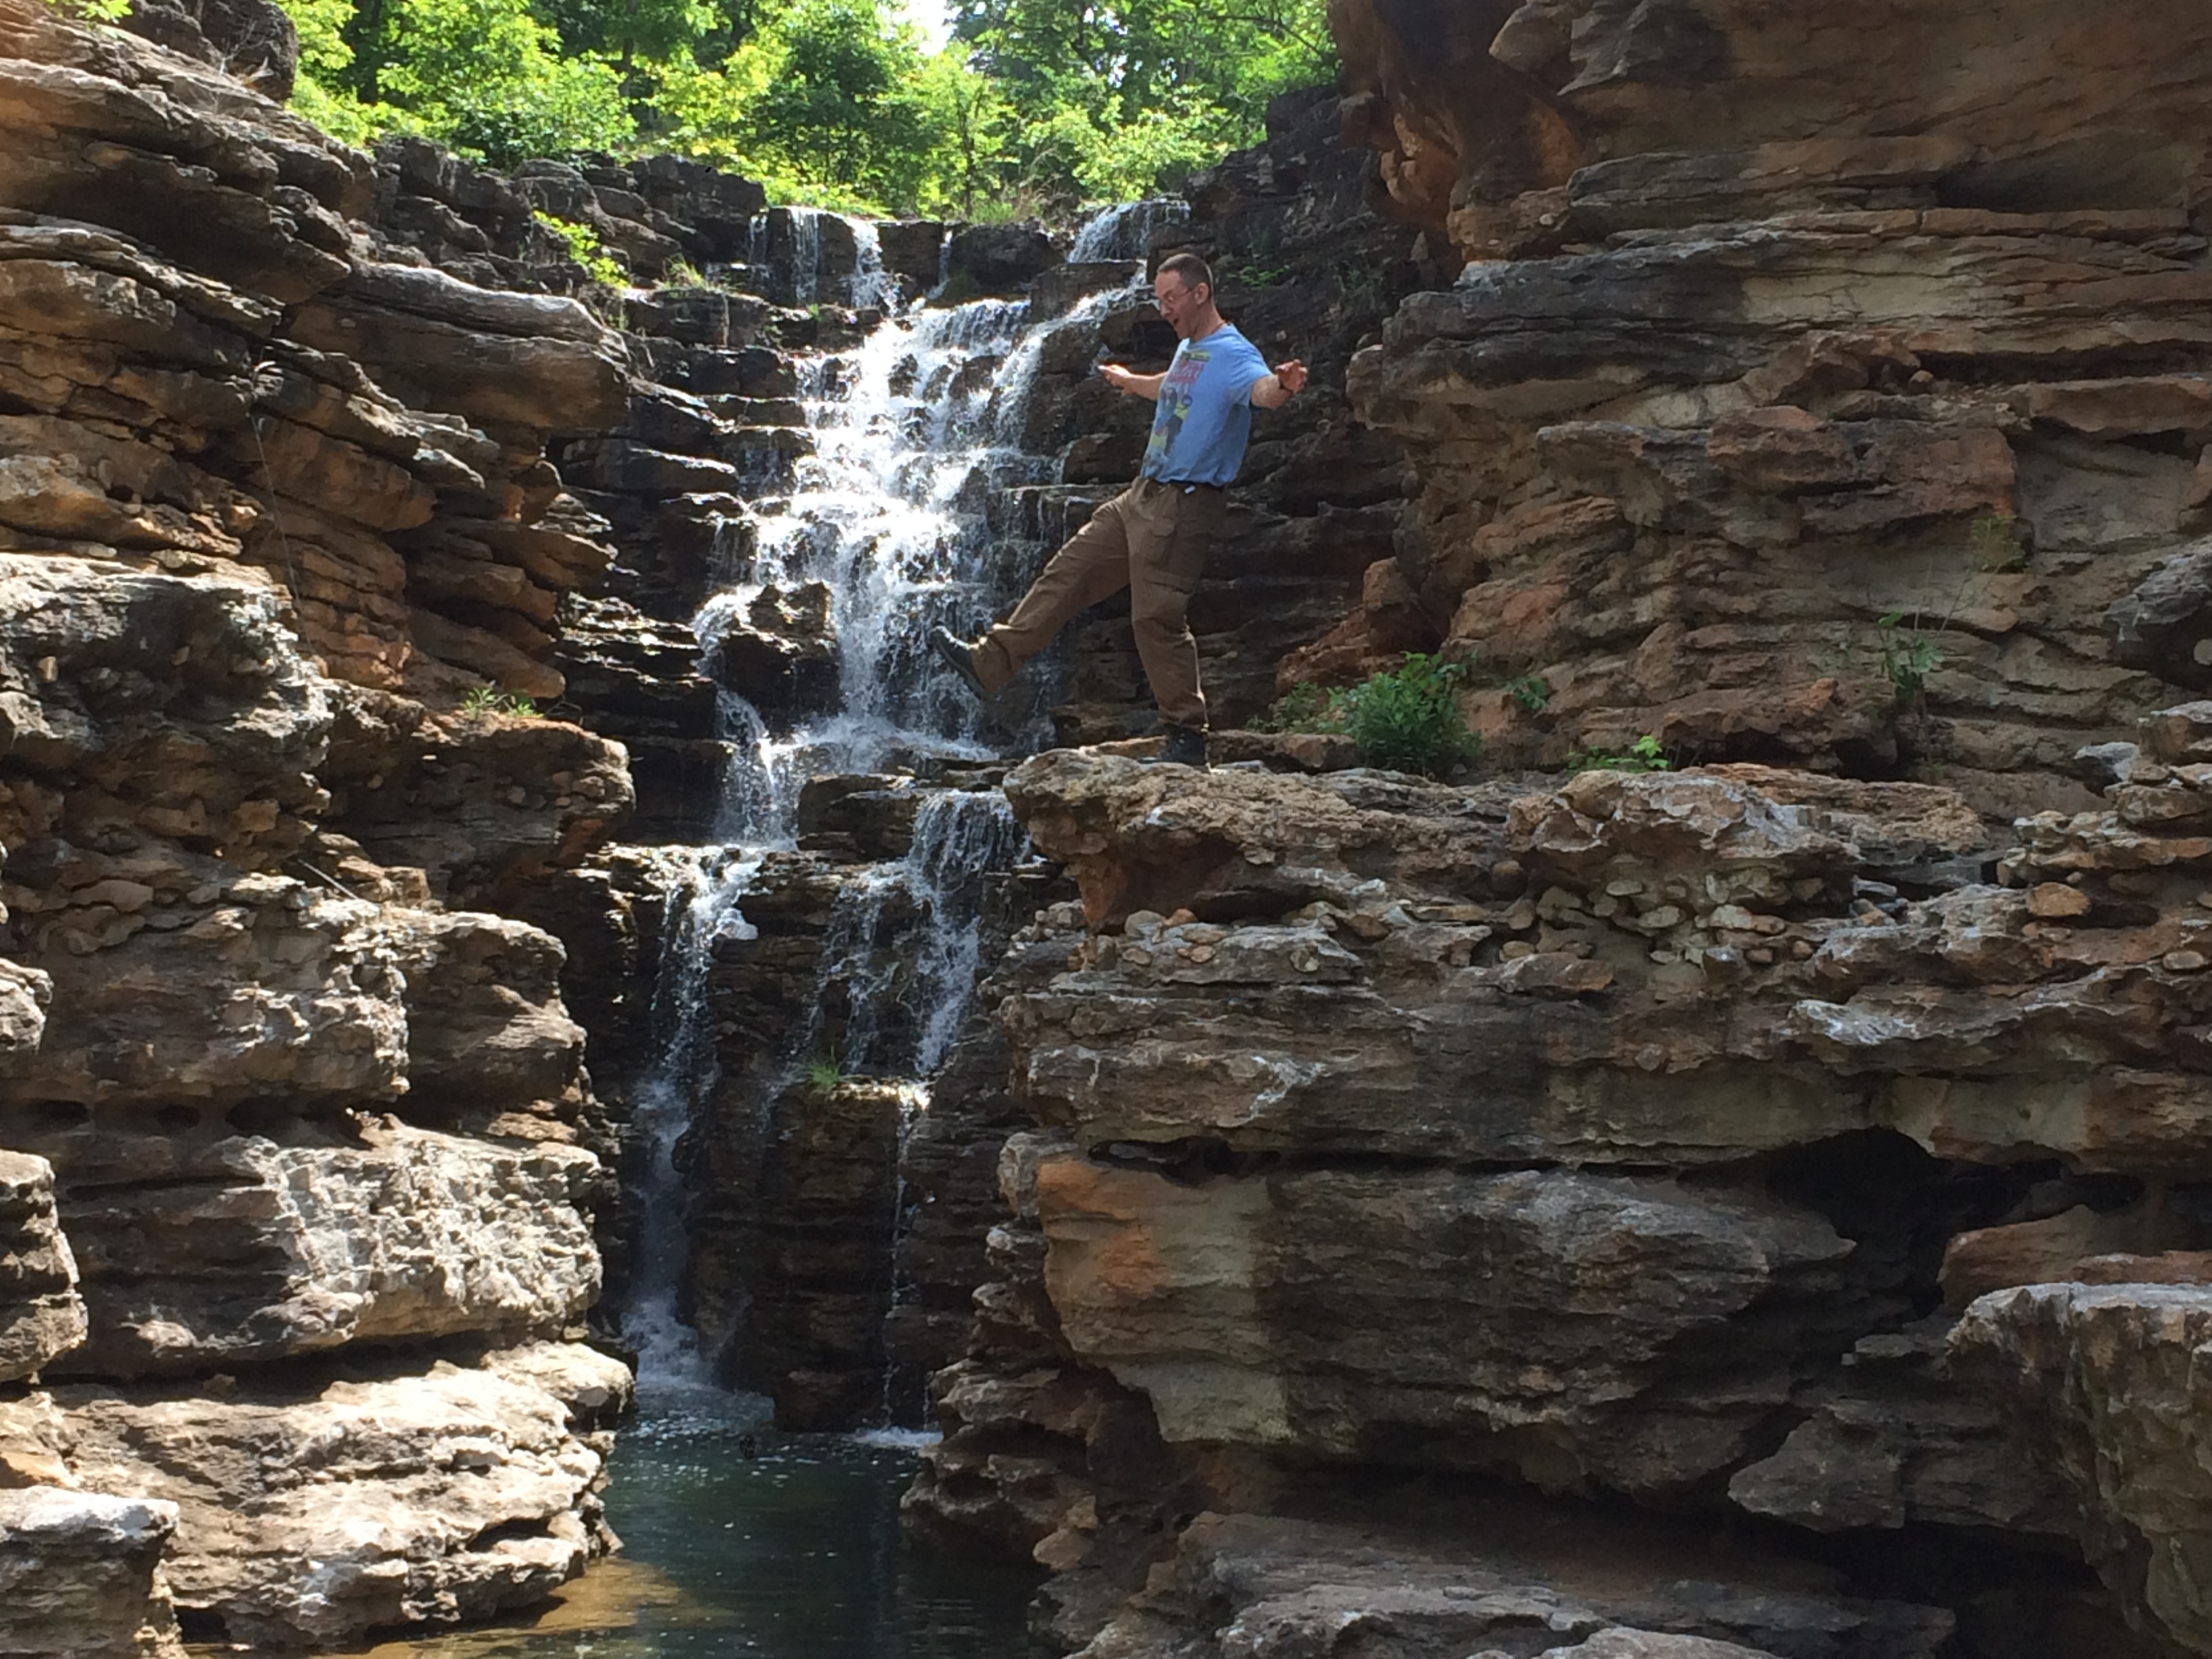 Instructor Hutch dancing on a ledge next to a waterfall